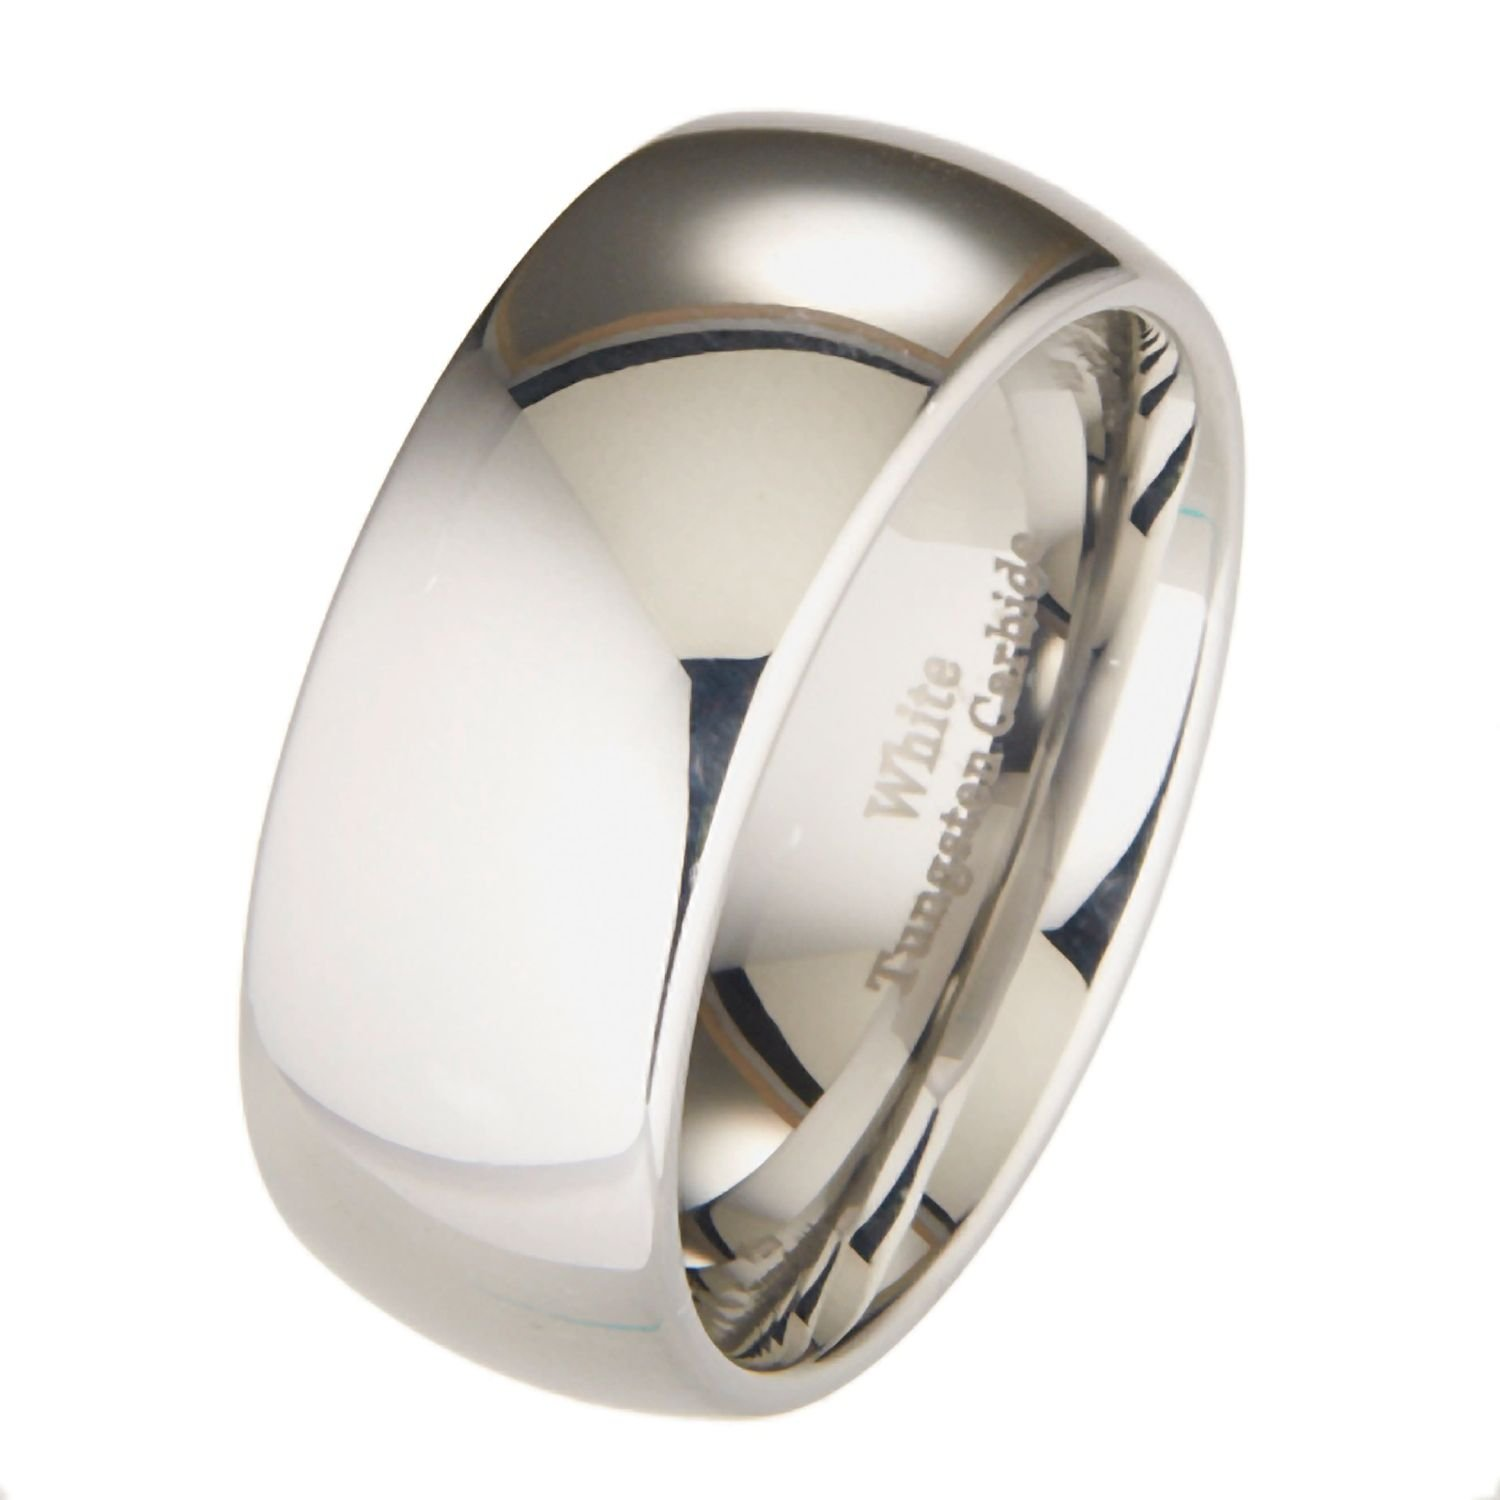 MJ Metals Jewelry Custom Engraved 10mm White Tungsten Carbide Polished Wedding Ring Size 12